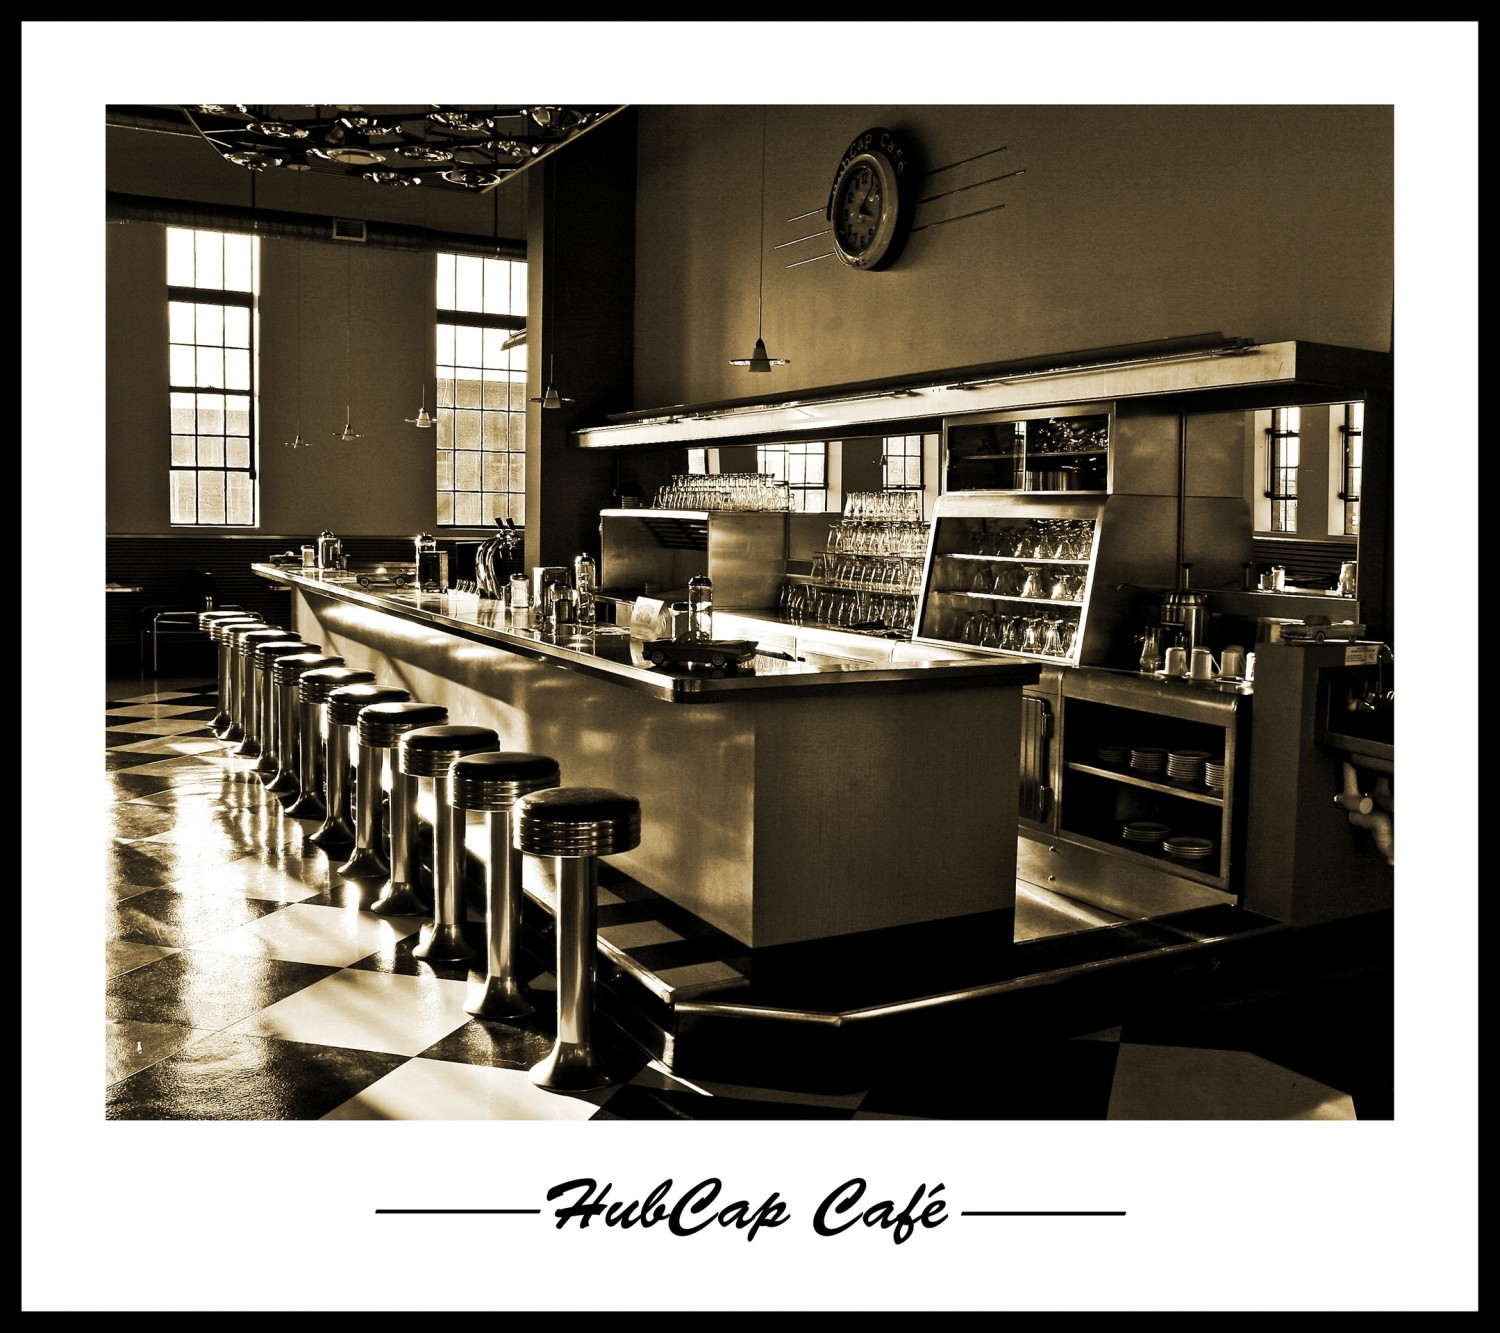 hub-cap-cafe-sepia-final001-highres